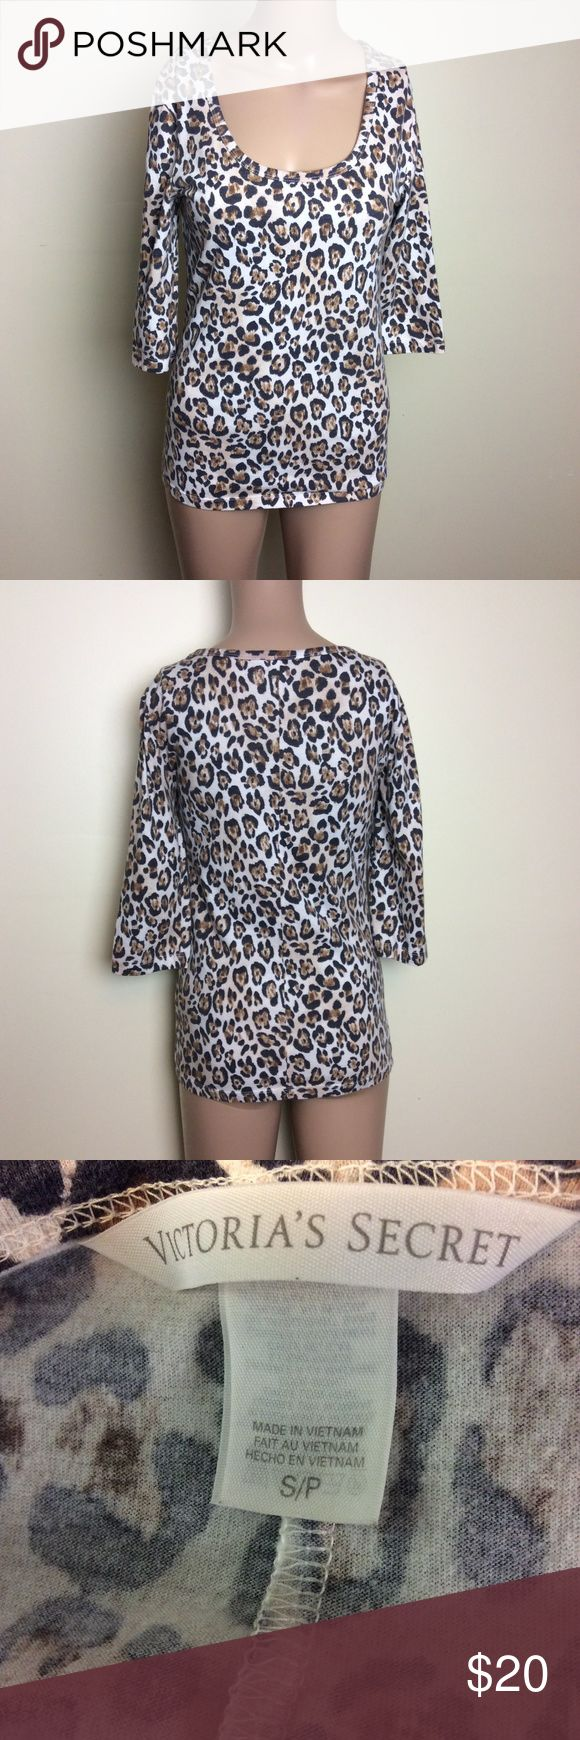 Victorias Secret Animal Print Tee Victorias Secret leopard/animal print 3/4 sleeve tee no known flaws Size small 60% cotton, 40% polyester Victoria's Secret Tops